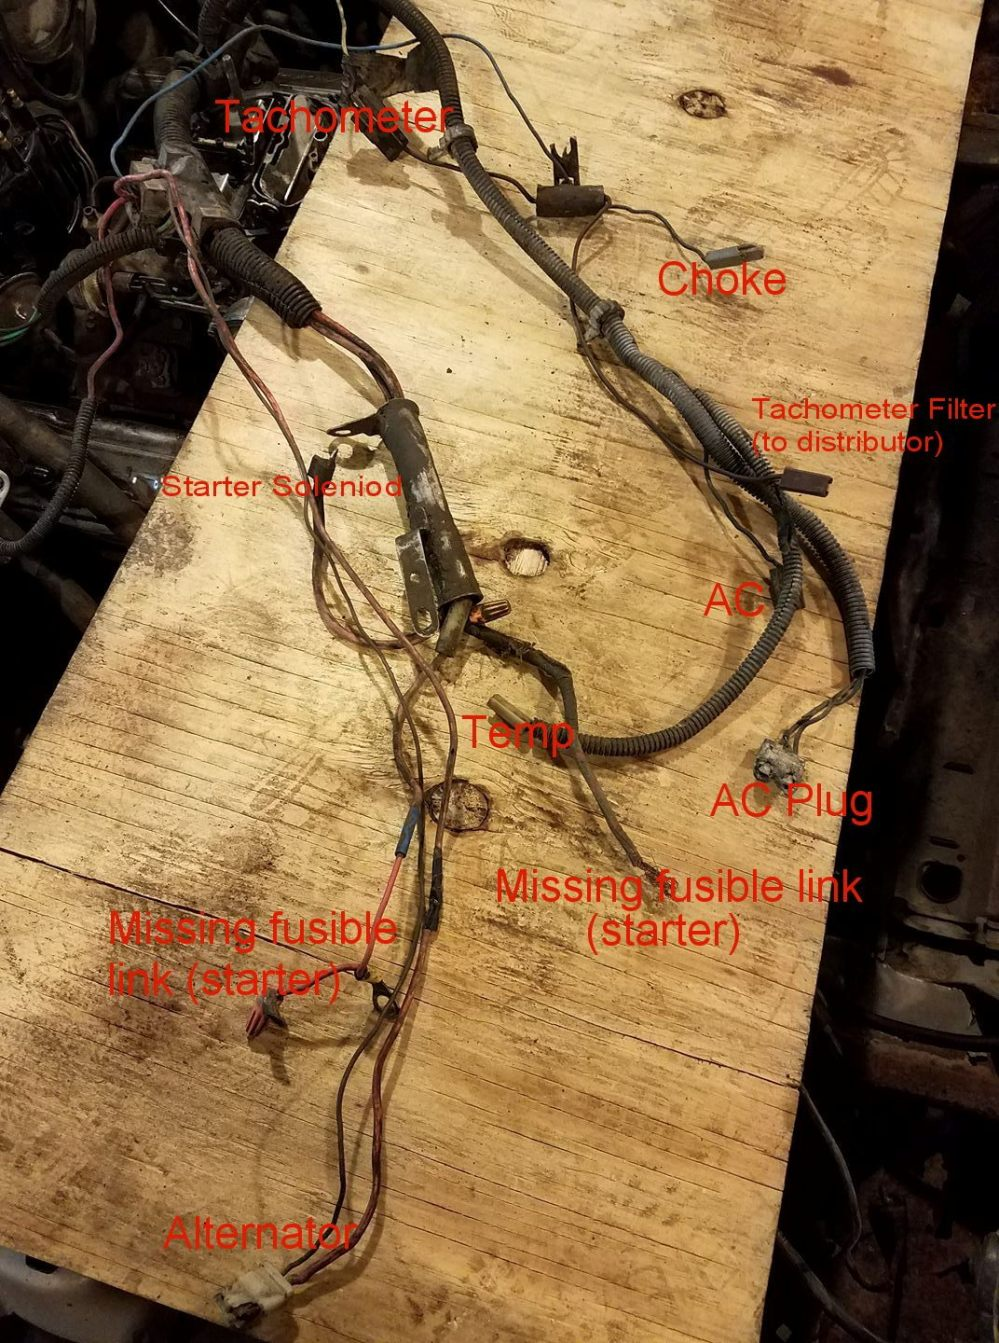 medium resolution of p s looks like only 1 of your starter wires does have a fusible link i didn t see it when i wrote the labels you should be sure to install